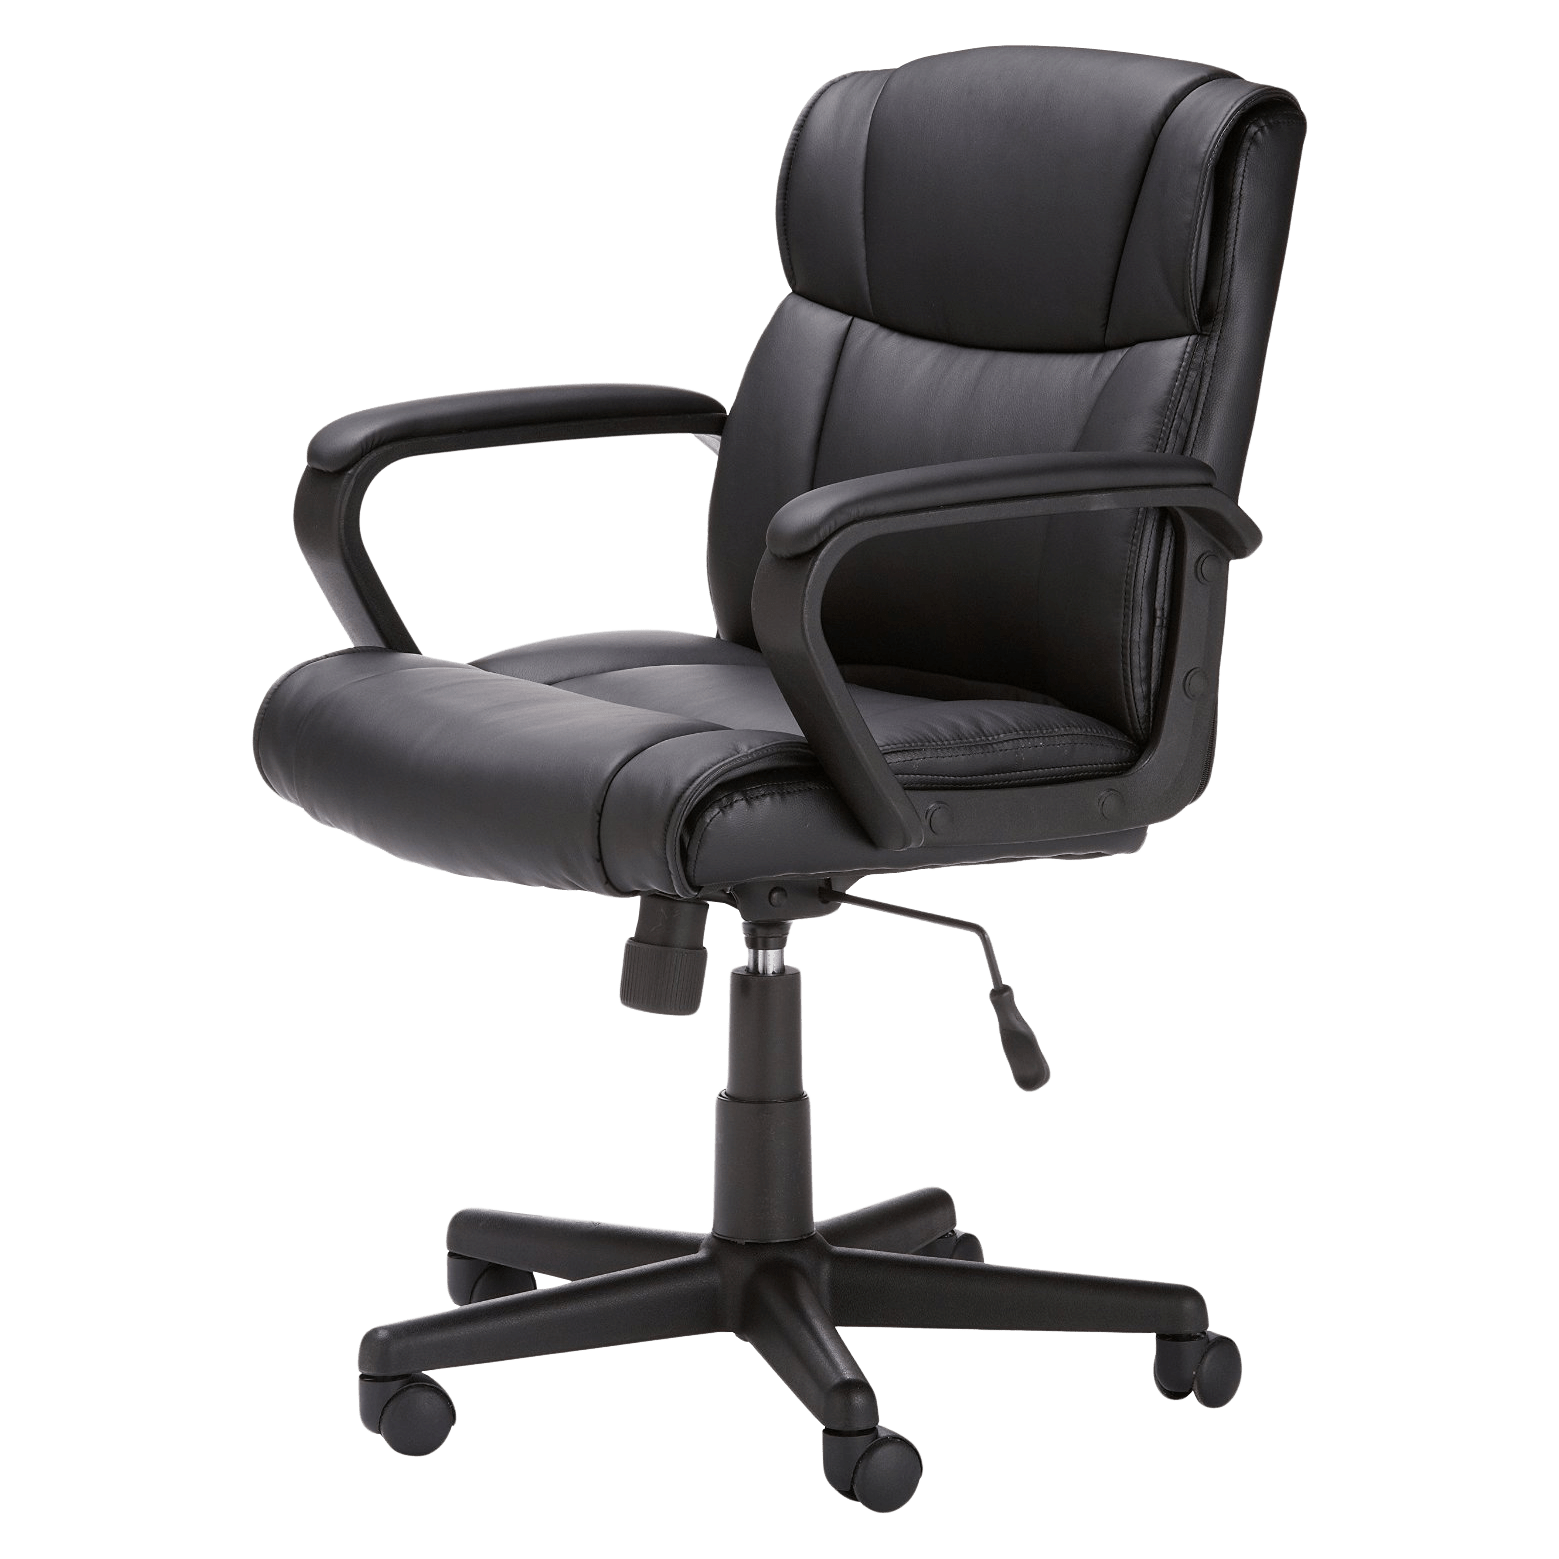 Rolling Desk Chairs Rolling Chair Png Transparent Image Pngpix